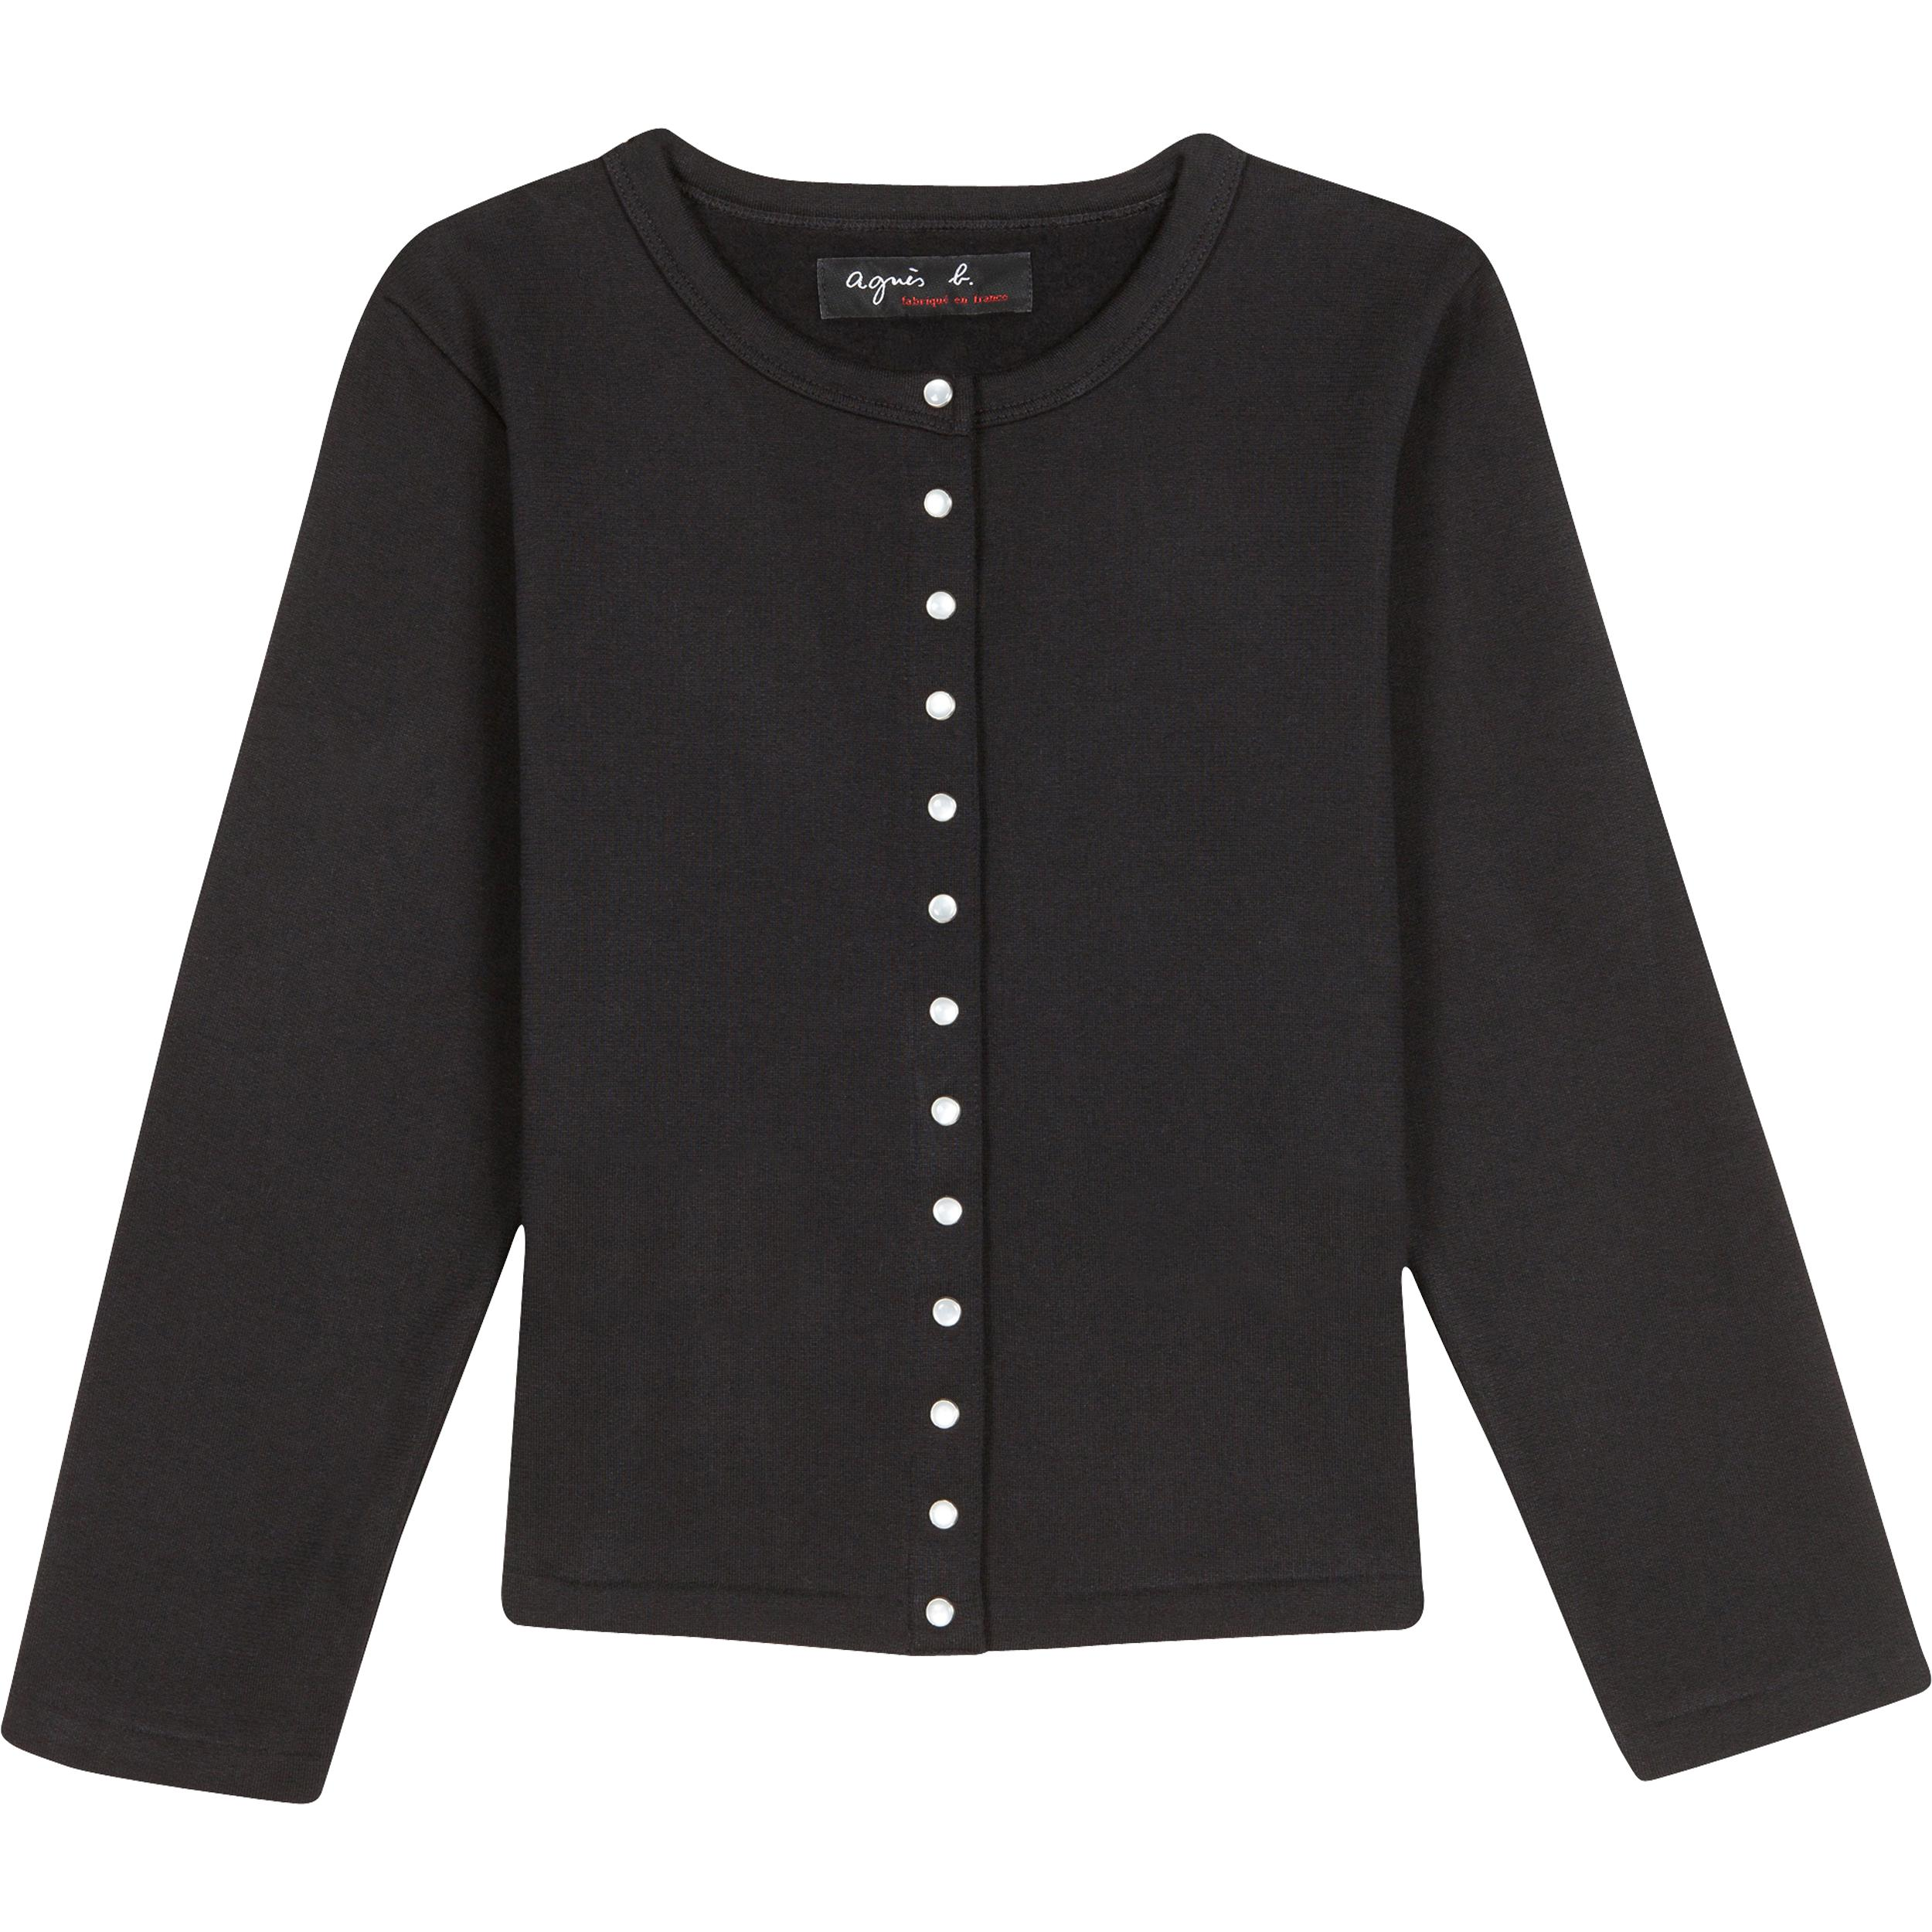 Shop Women's agnès b. Cardigans from $25 | Lyst